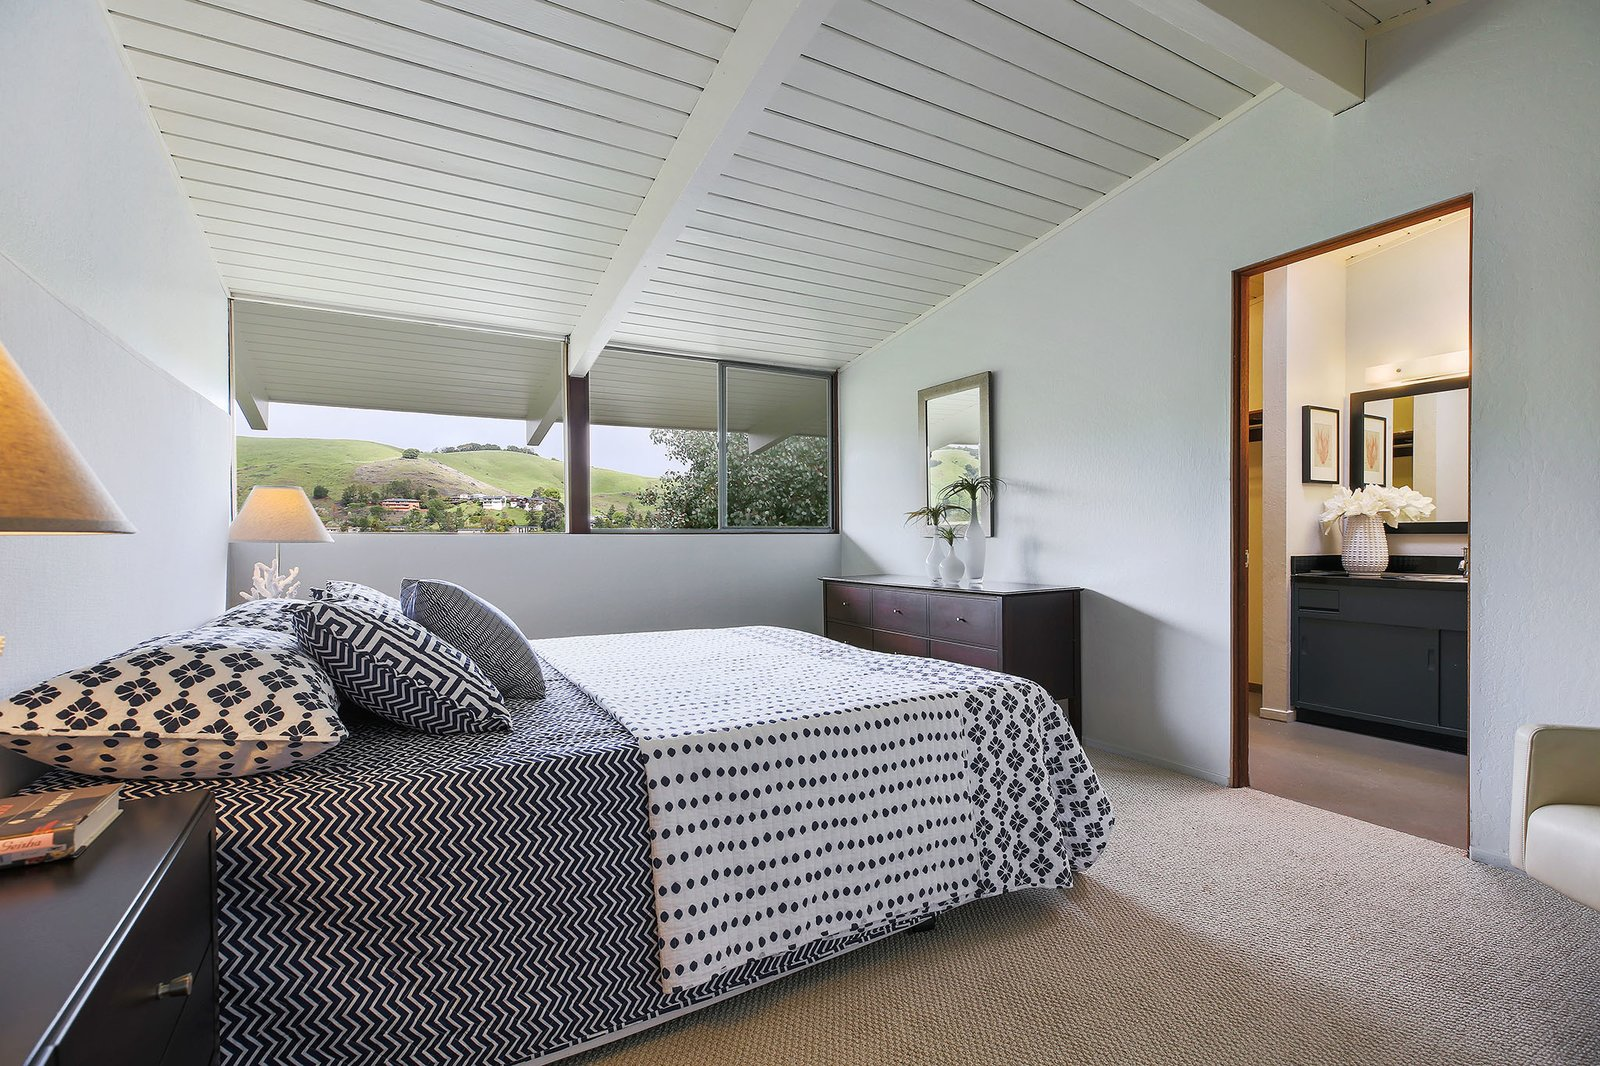 Bedroom, Dresser, Bed, Table Lighting, Carpet Floor, Lamps, and Night Stands The master bedroom has an en-suite bathroom and a large walk in closet.  Photo 12 of 15 in This Rare Two-Story Eichler Has Just Been Listed For $1.35M